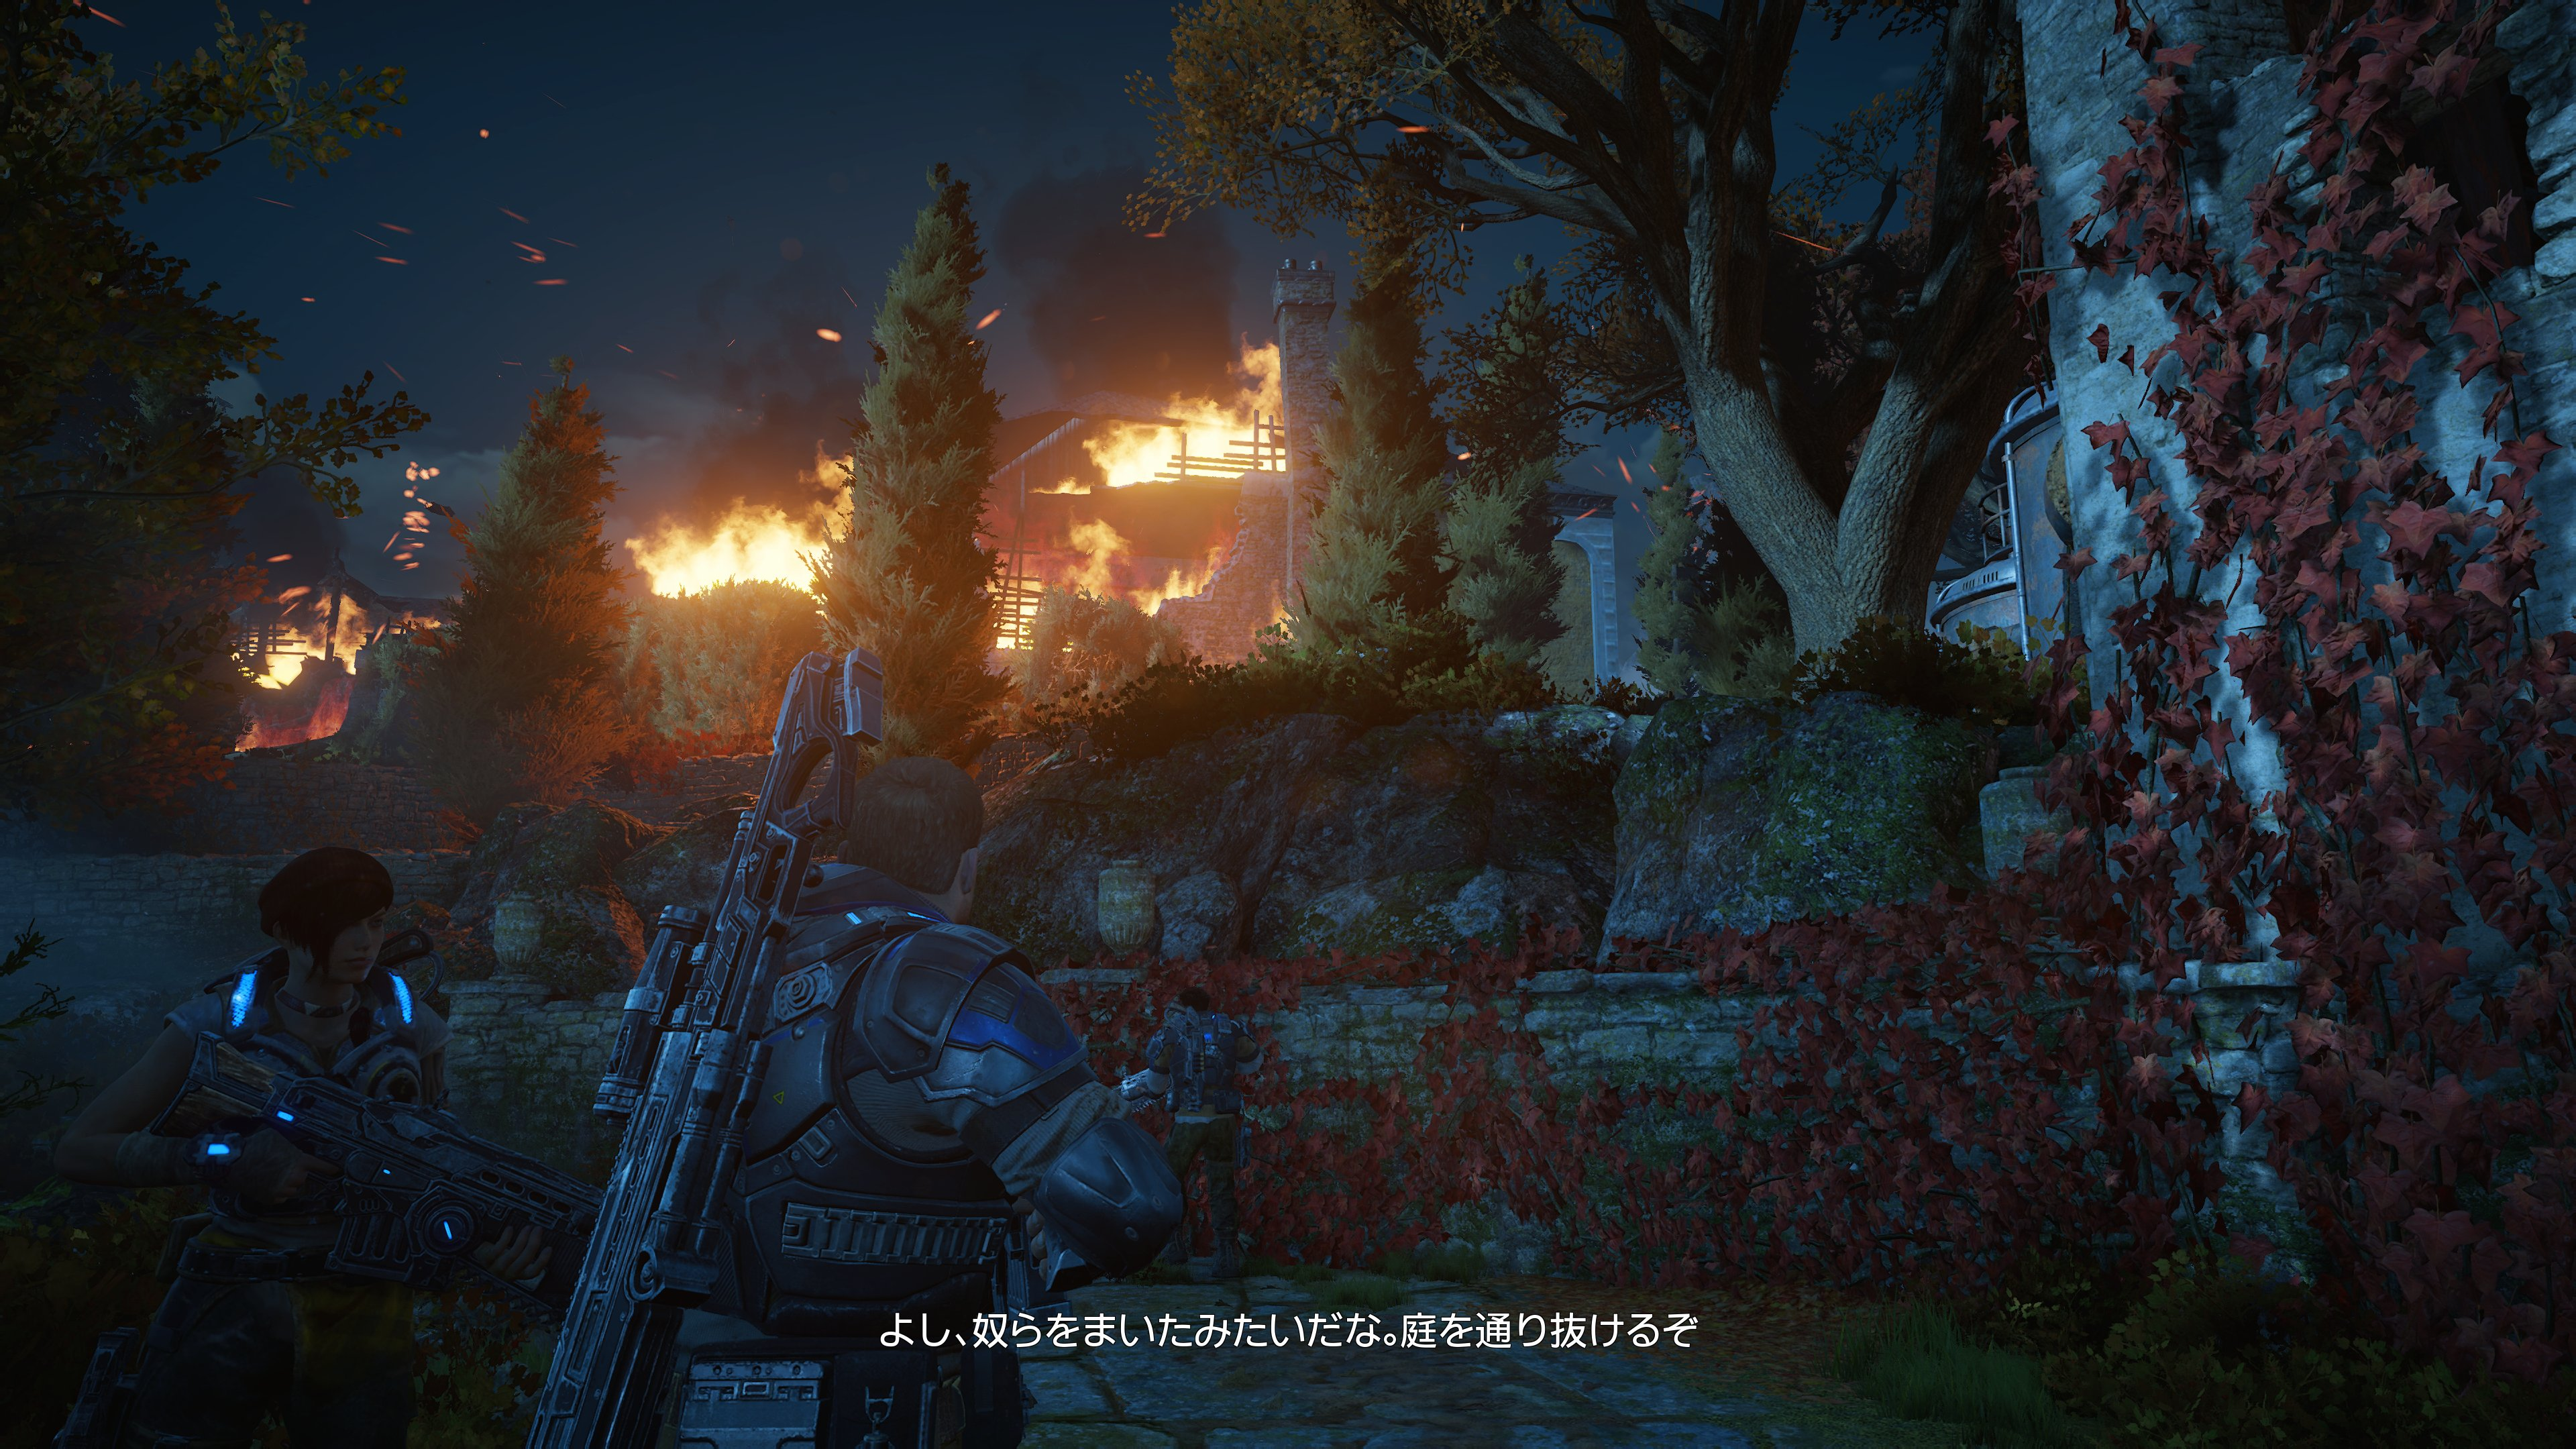 「Gears of War 4」(日本マイクロソフト)